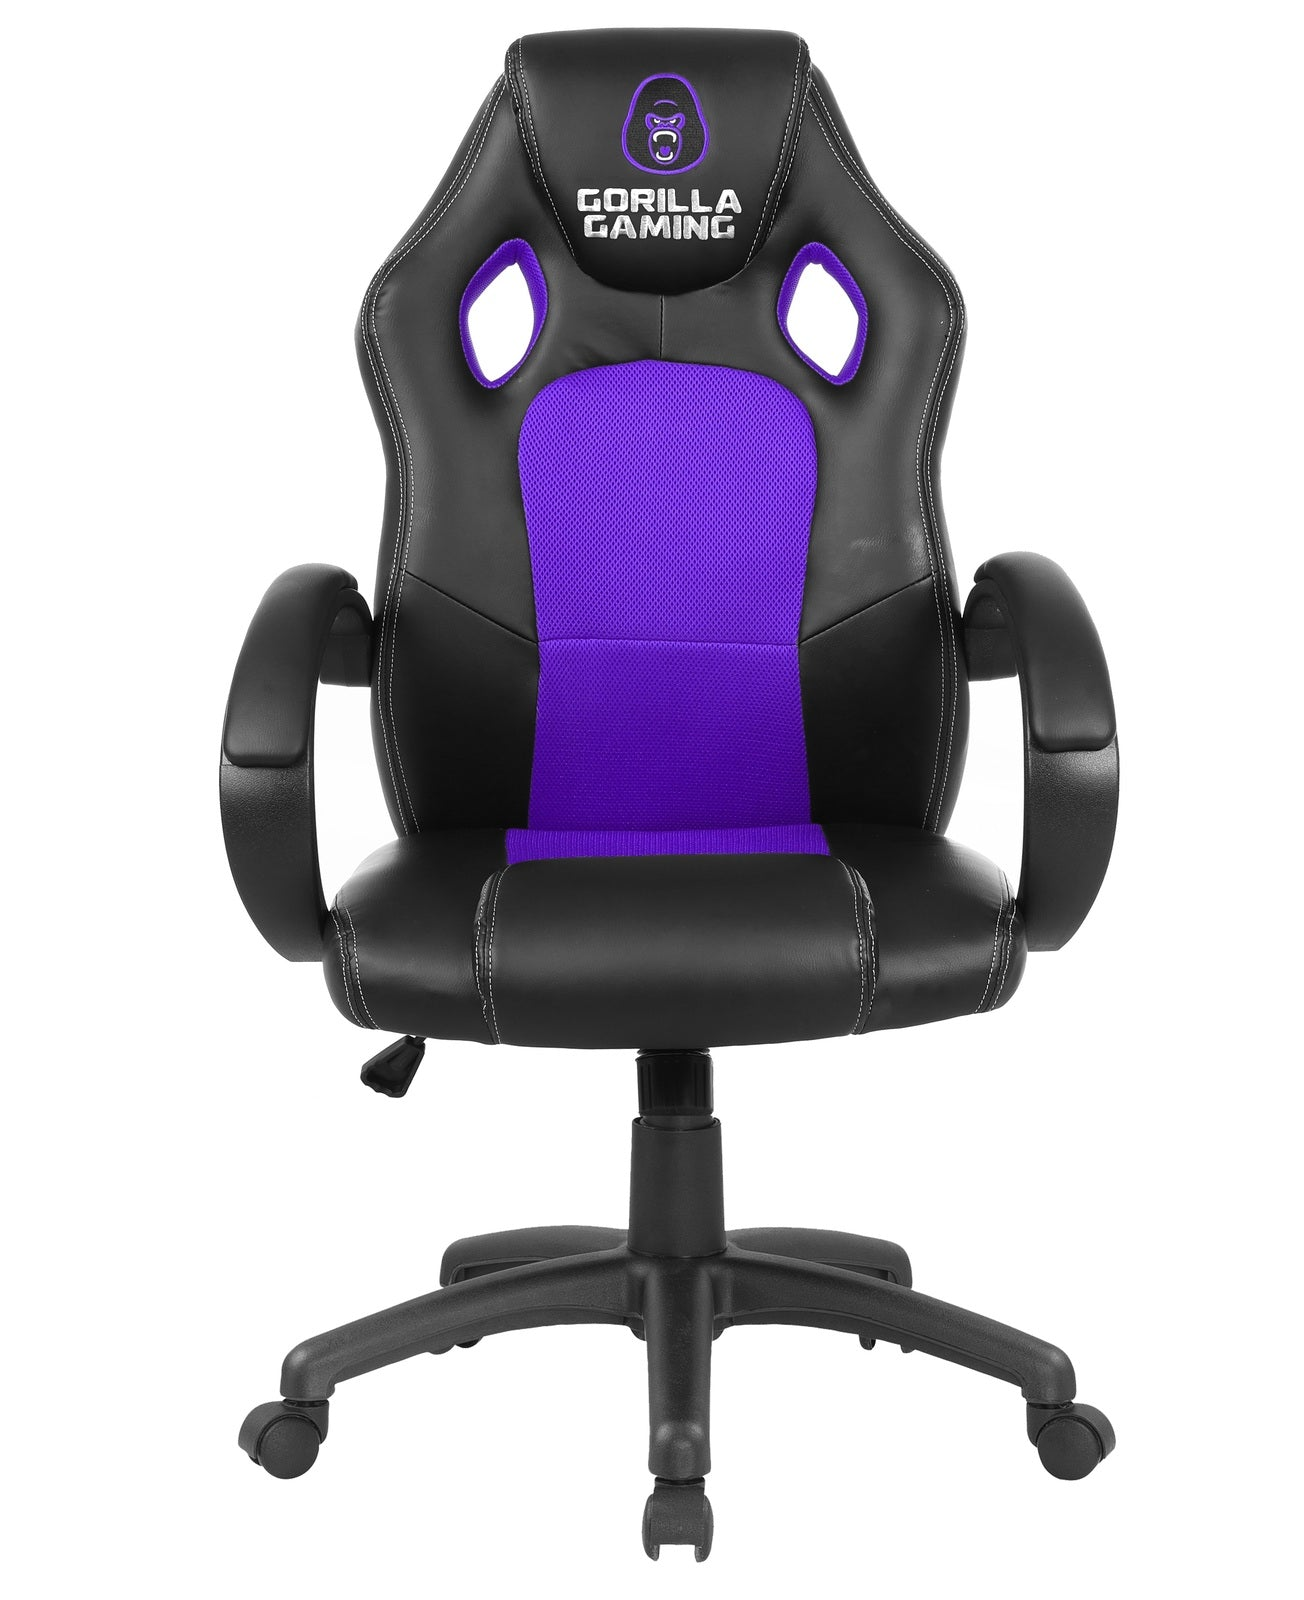 Gorilla Gaming Chair - Purple & Black